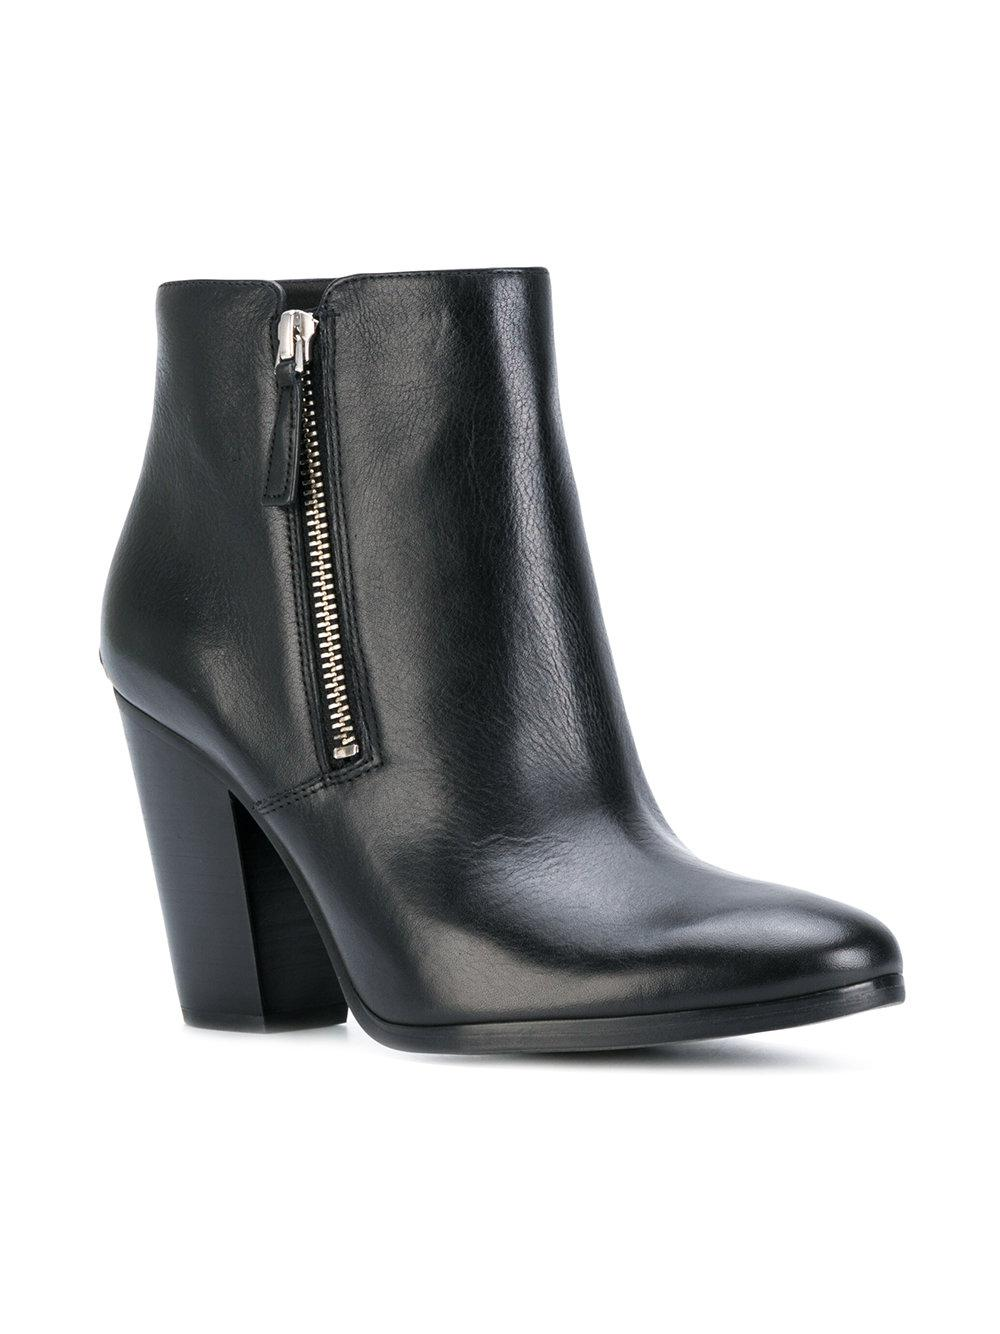 3aa5a4ba4053 Lyst - MICHAEL Michael Kors Denver Ankle Boots in Black